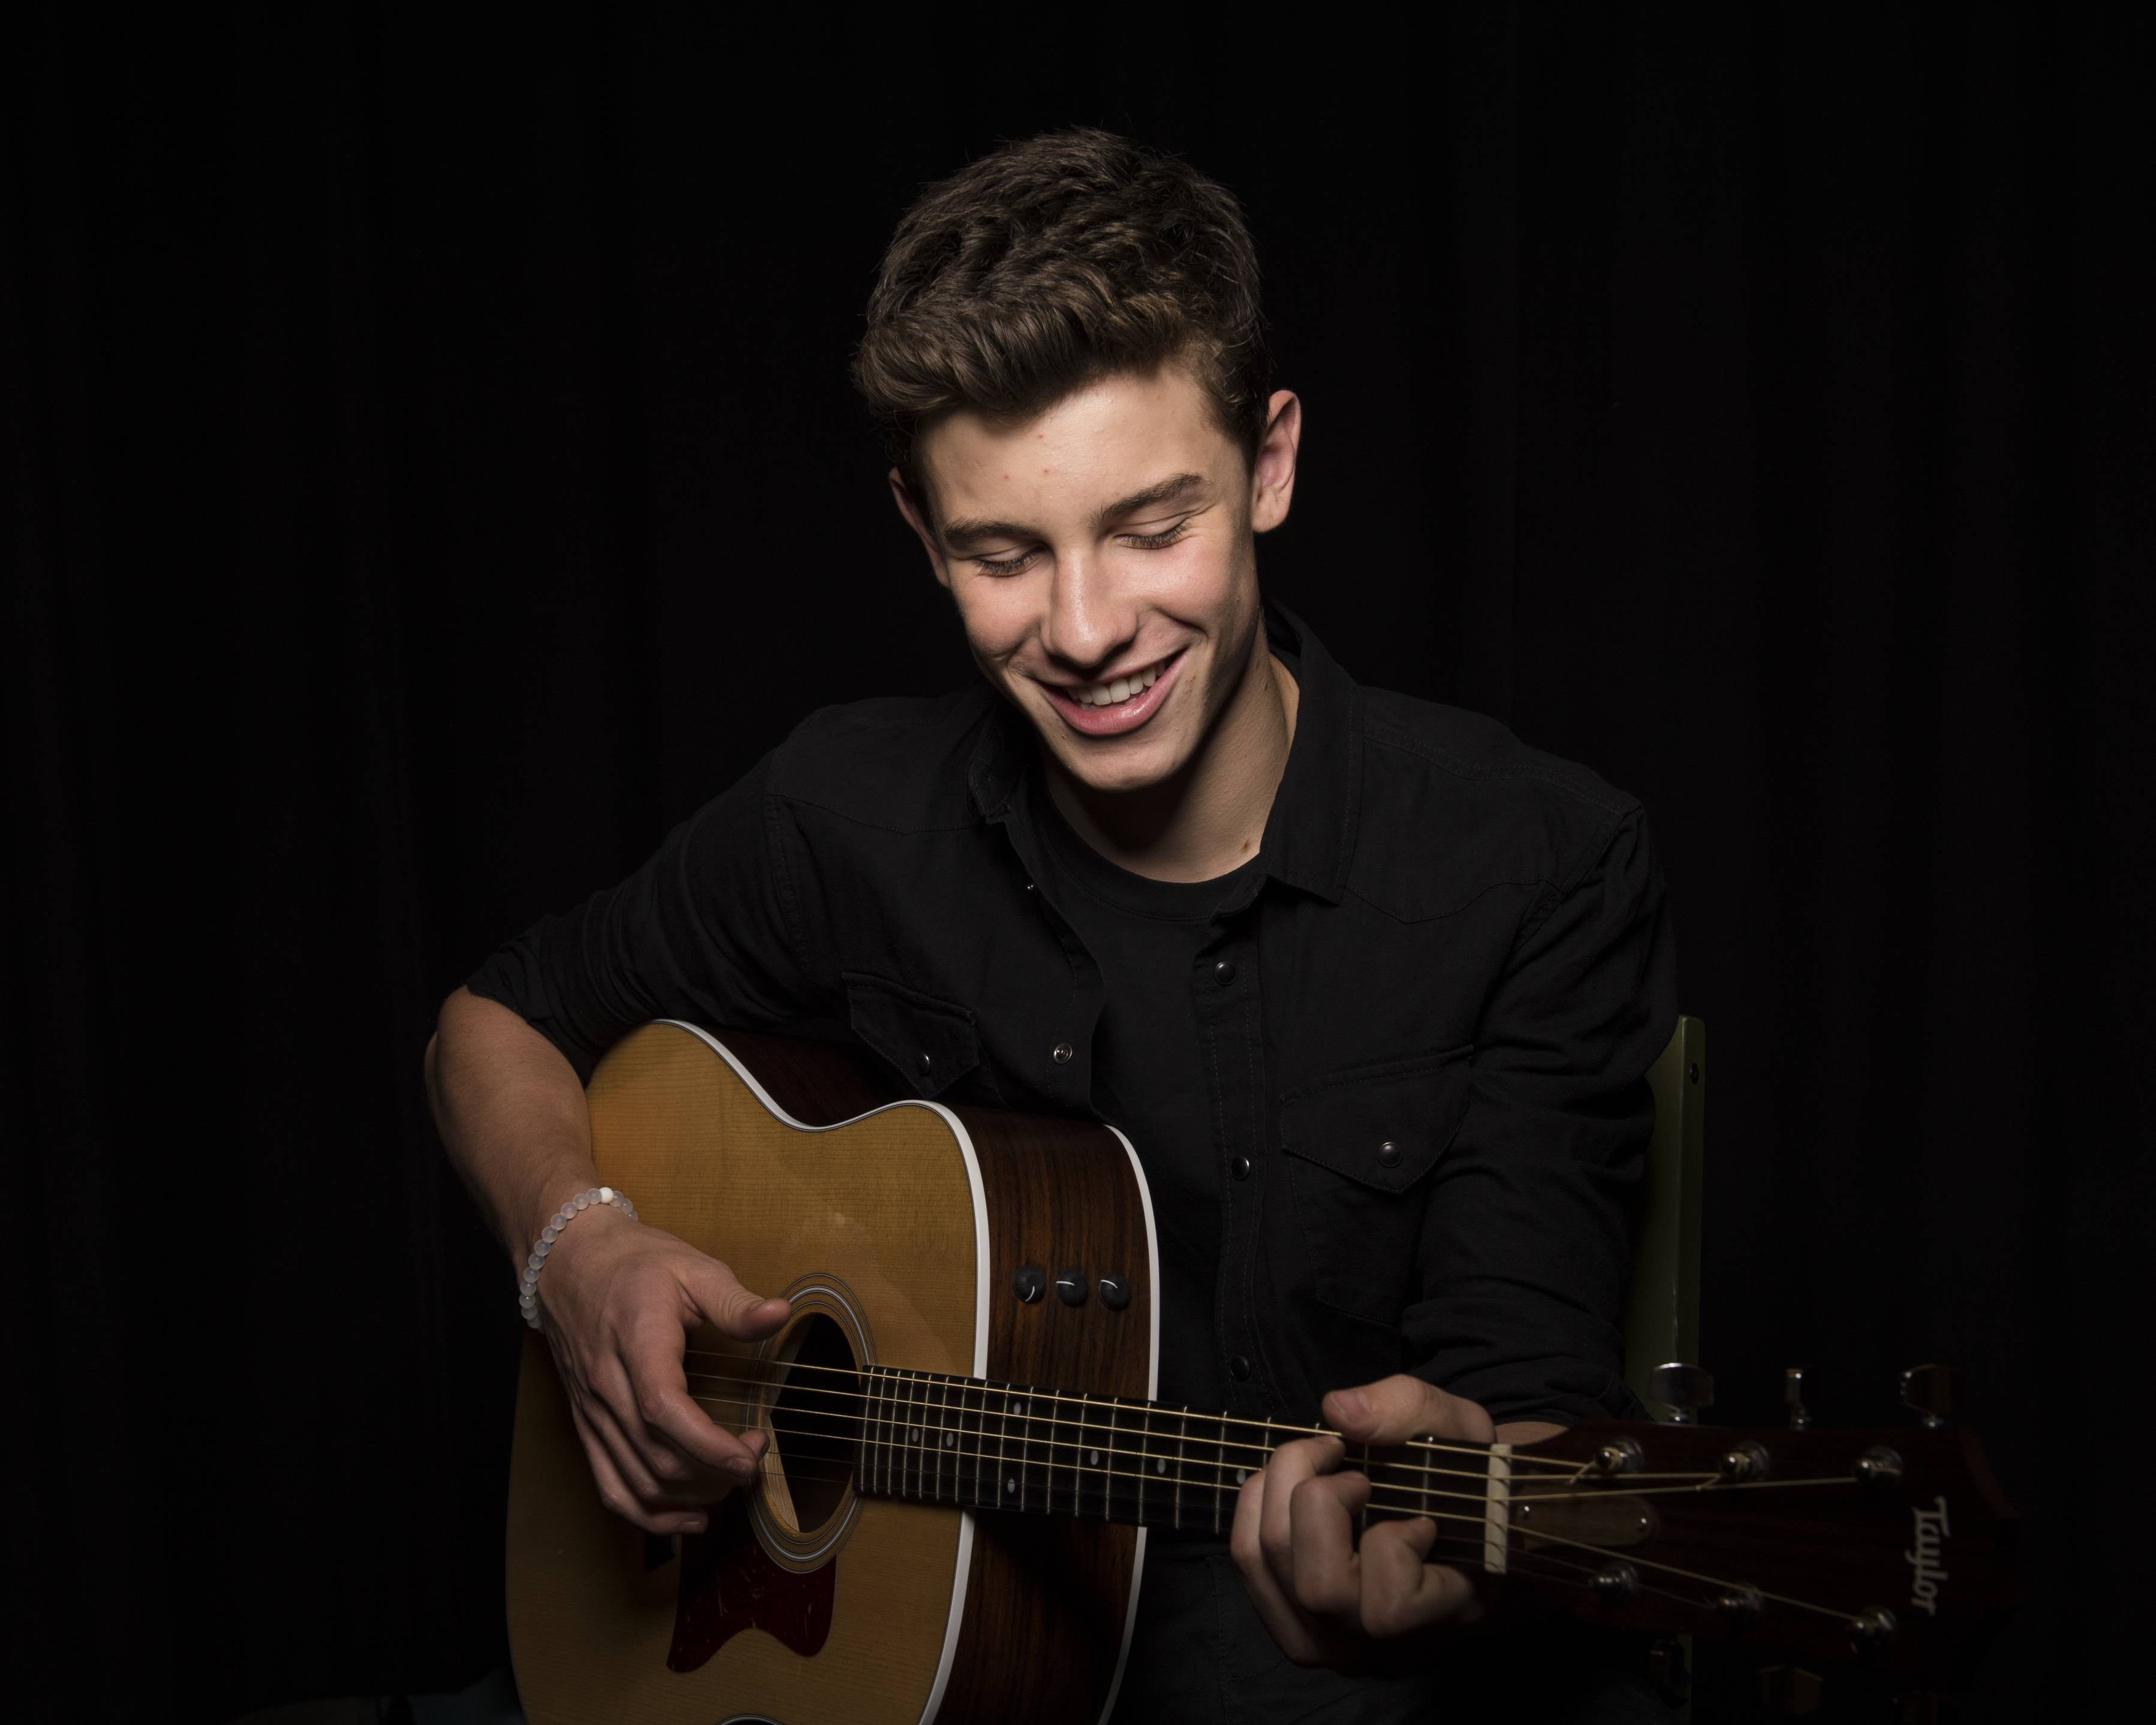 Canadian music artist Shawn Mendes, who turns 16 next month, was able to secure a following on Vine, where he had 300,000 fans awaiting his posts. Record labels caught wind of his strong social media presence.